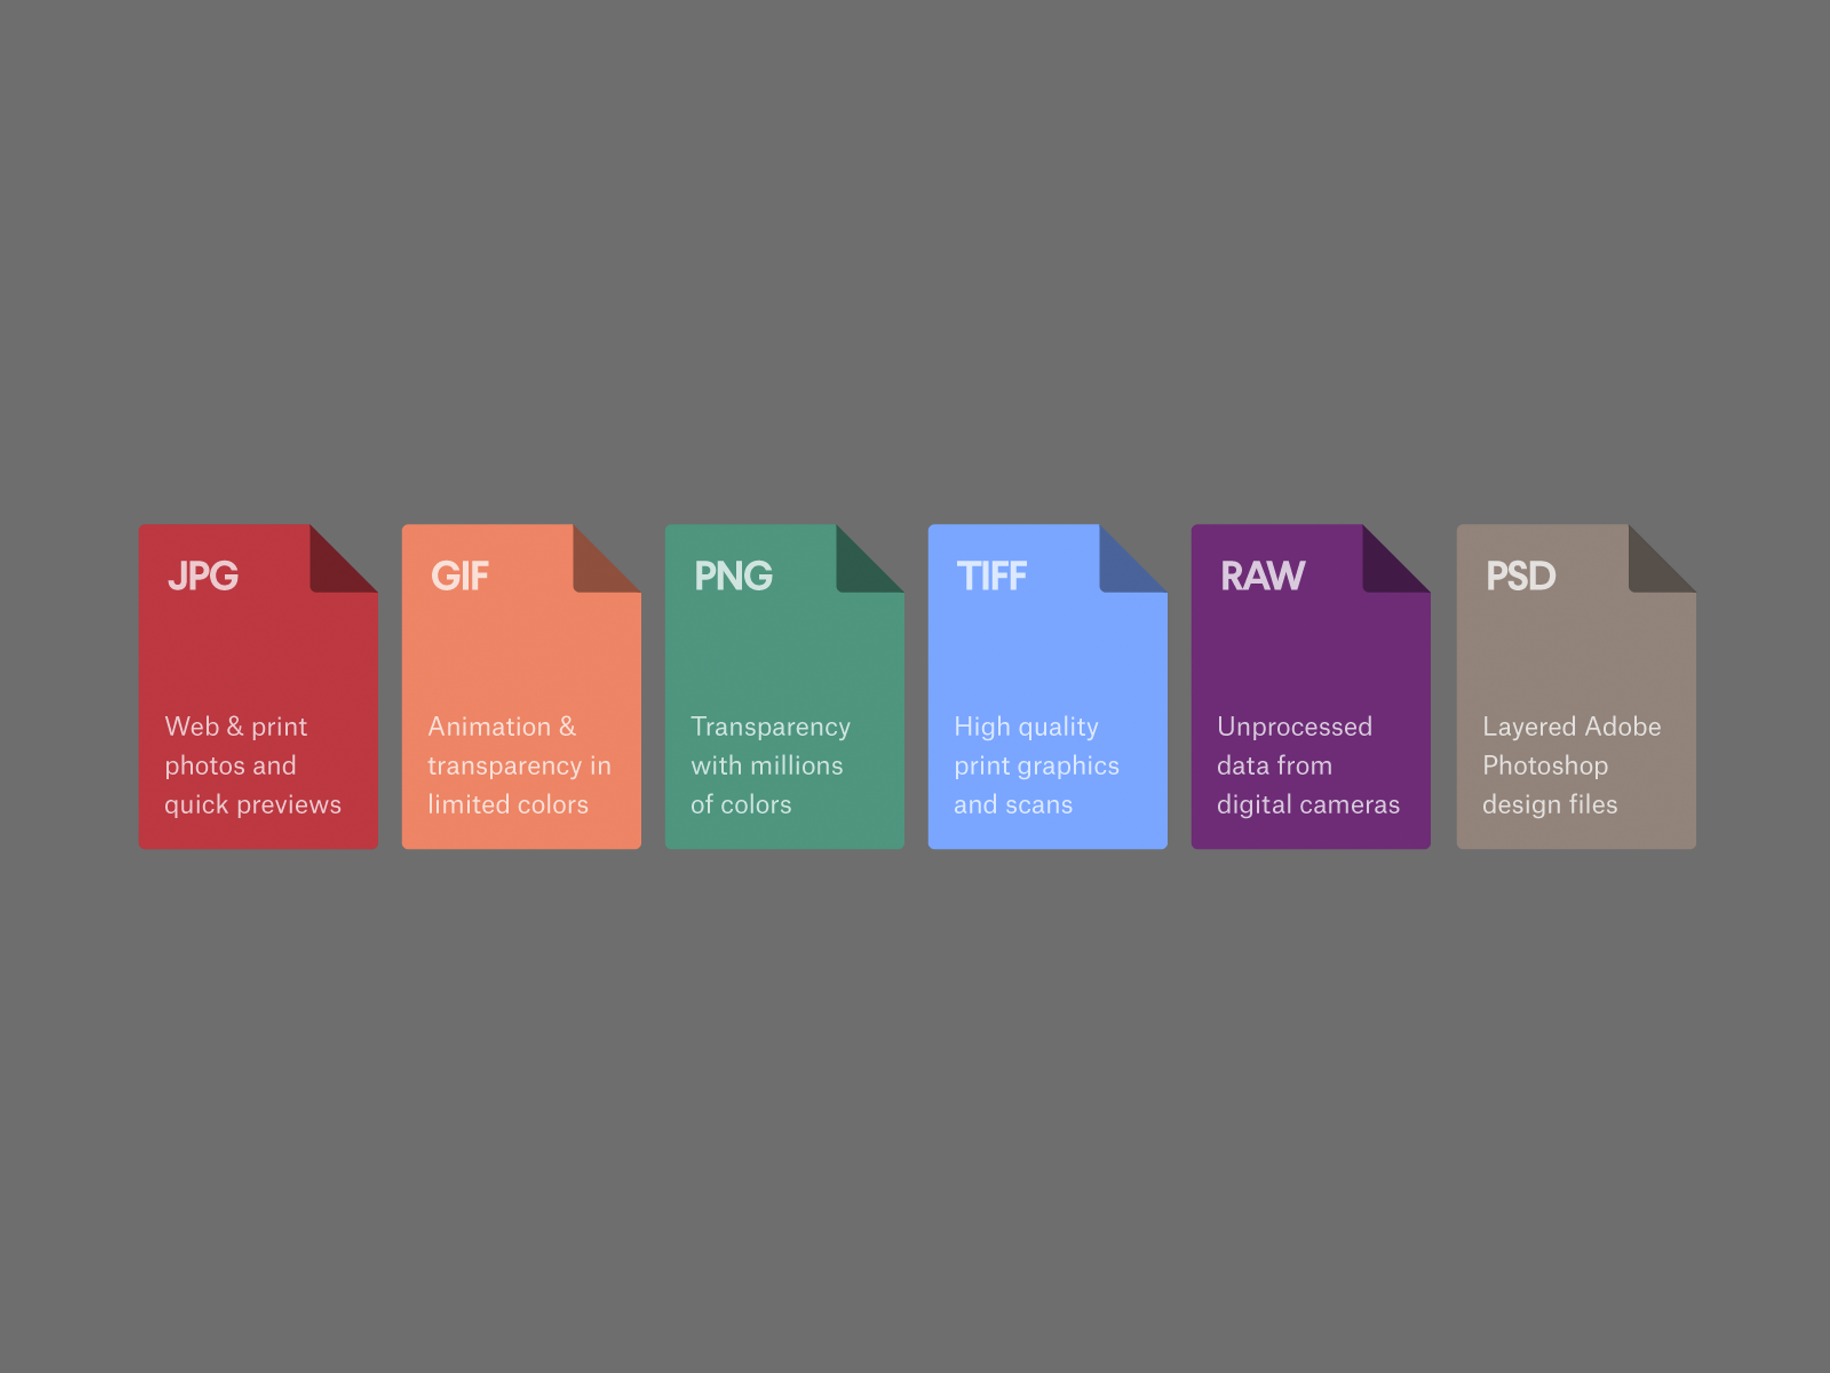 Image file formats: when to use each type of file.